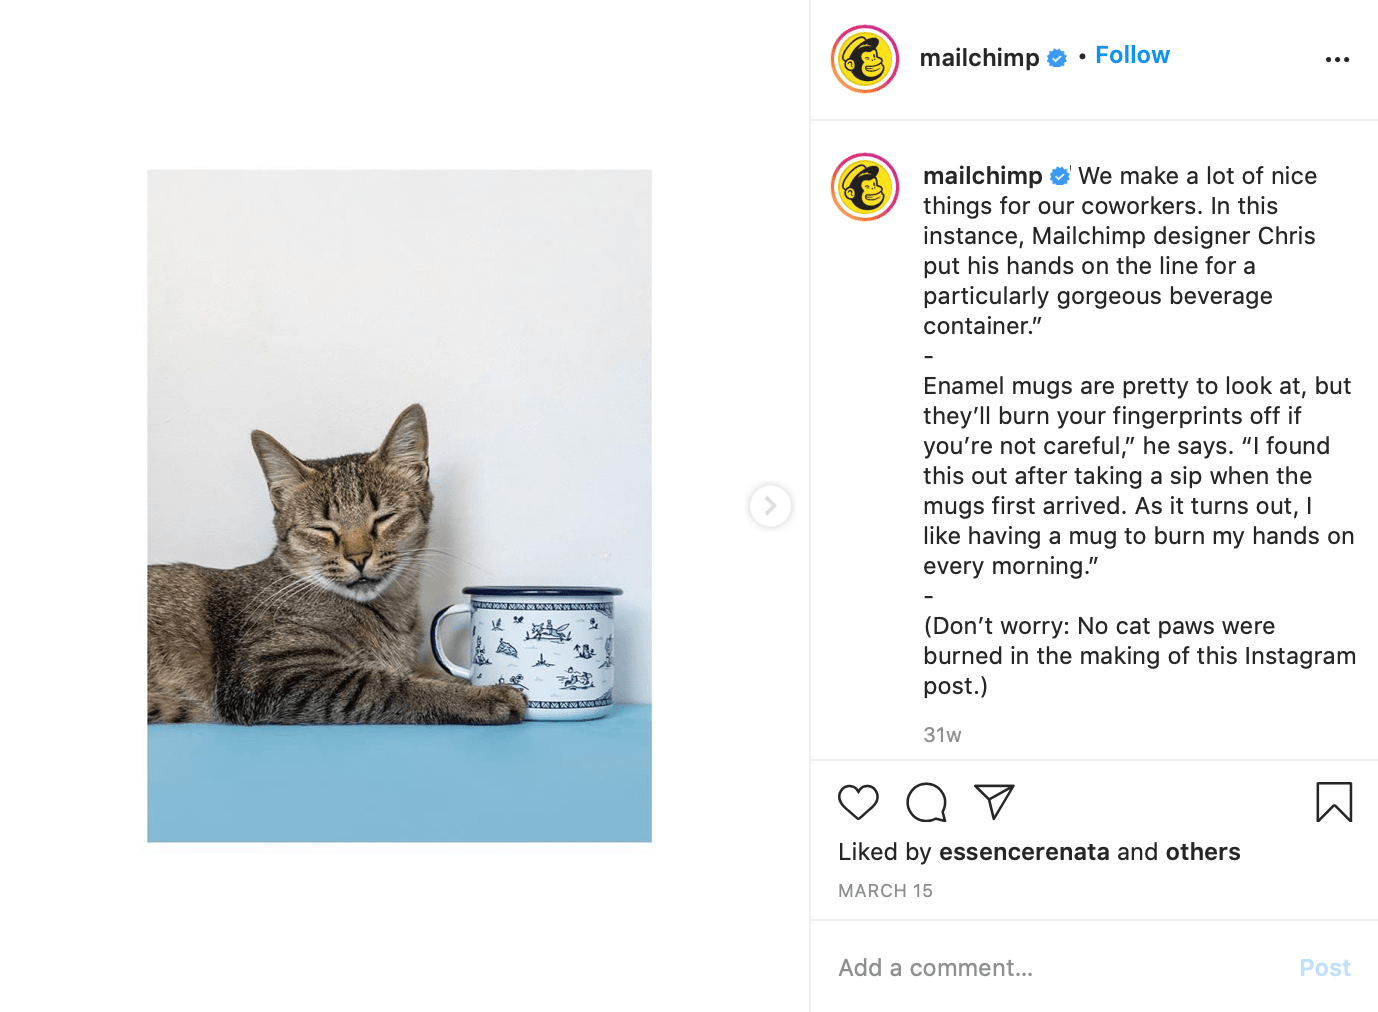 mailchimp funny cat photo on instagram